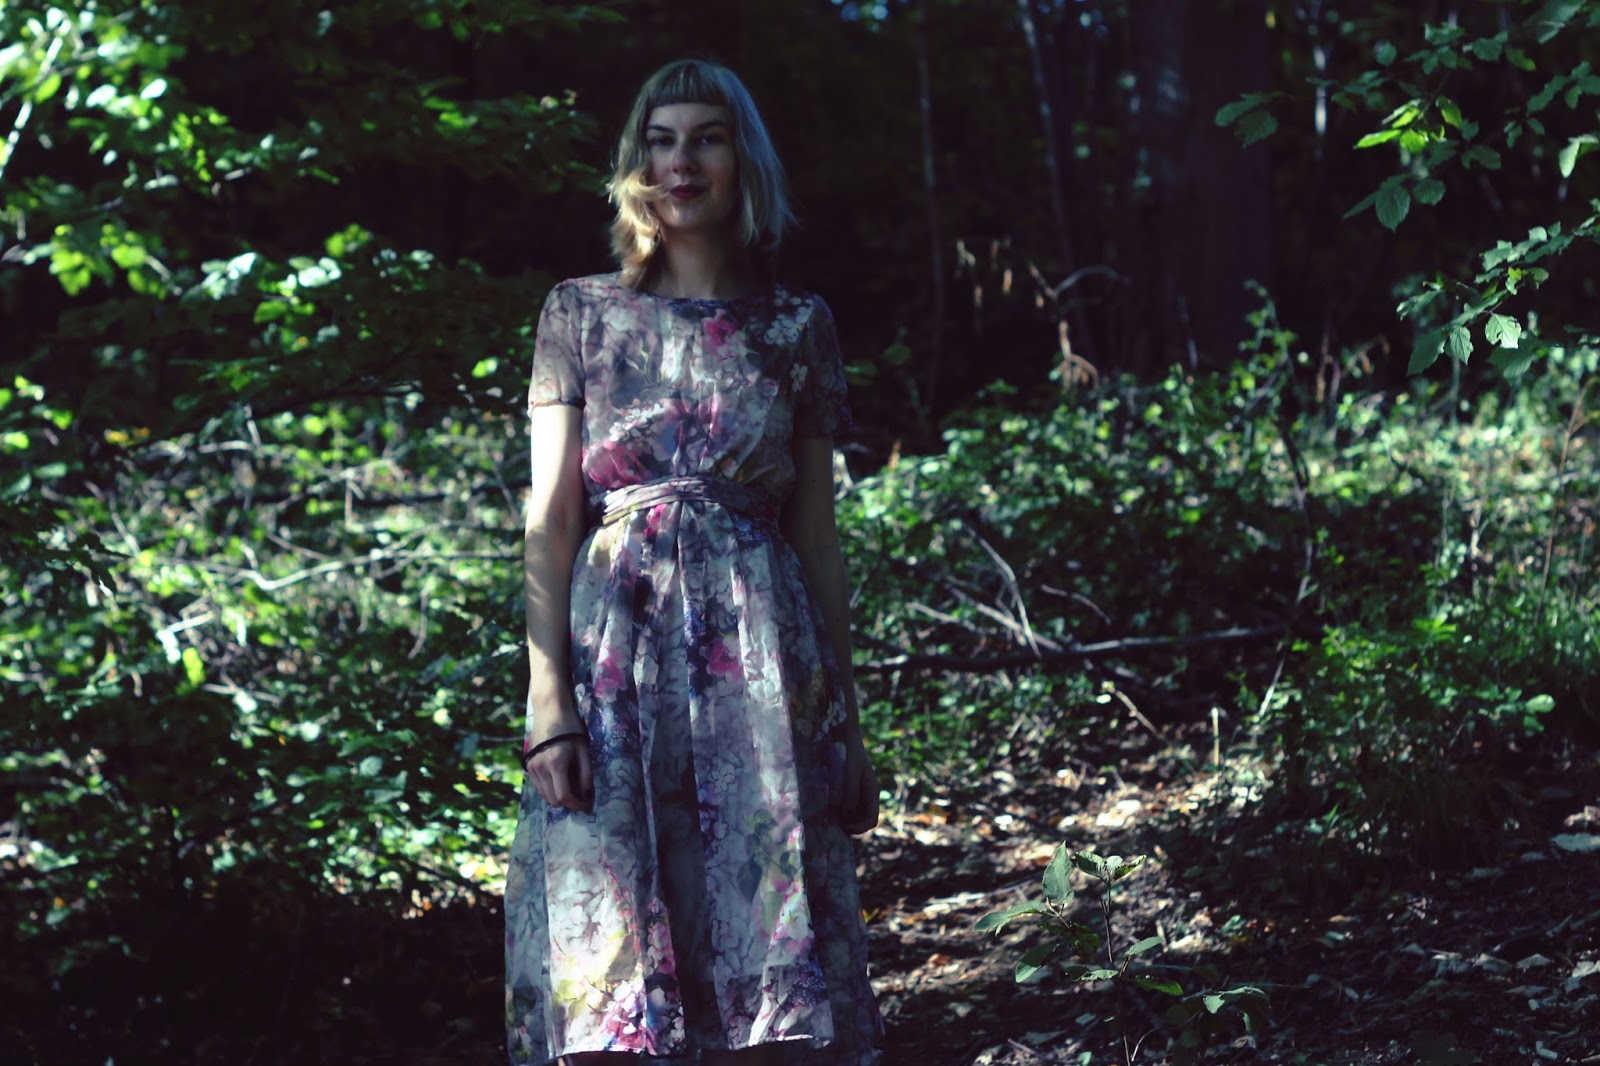 filipa canic, filipa canic blog, youarethepoet, you are the poet blog, rosegal, floral dress, forest,